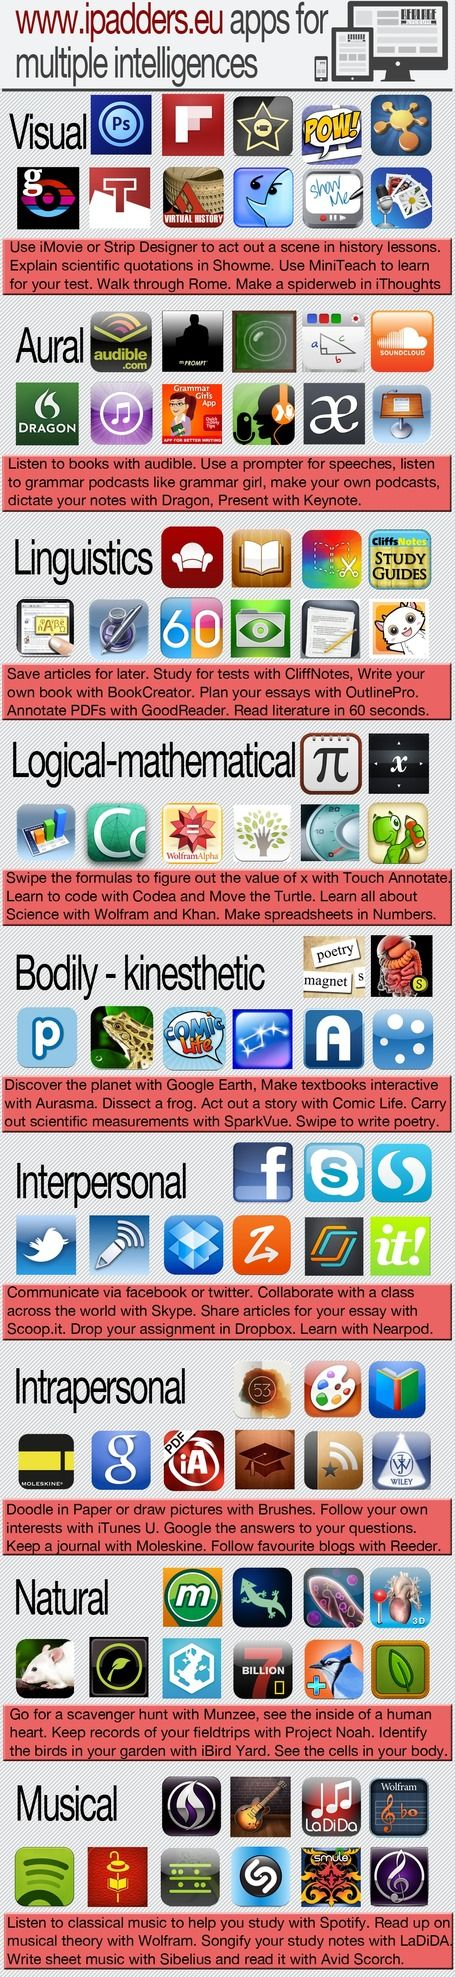 Apps for multiple intelligences | Apps_for_education | Scoop.it